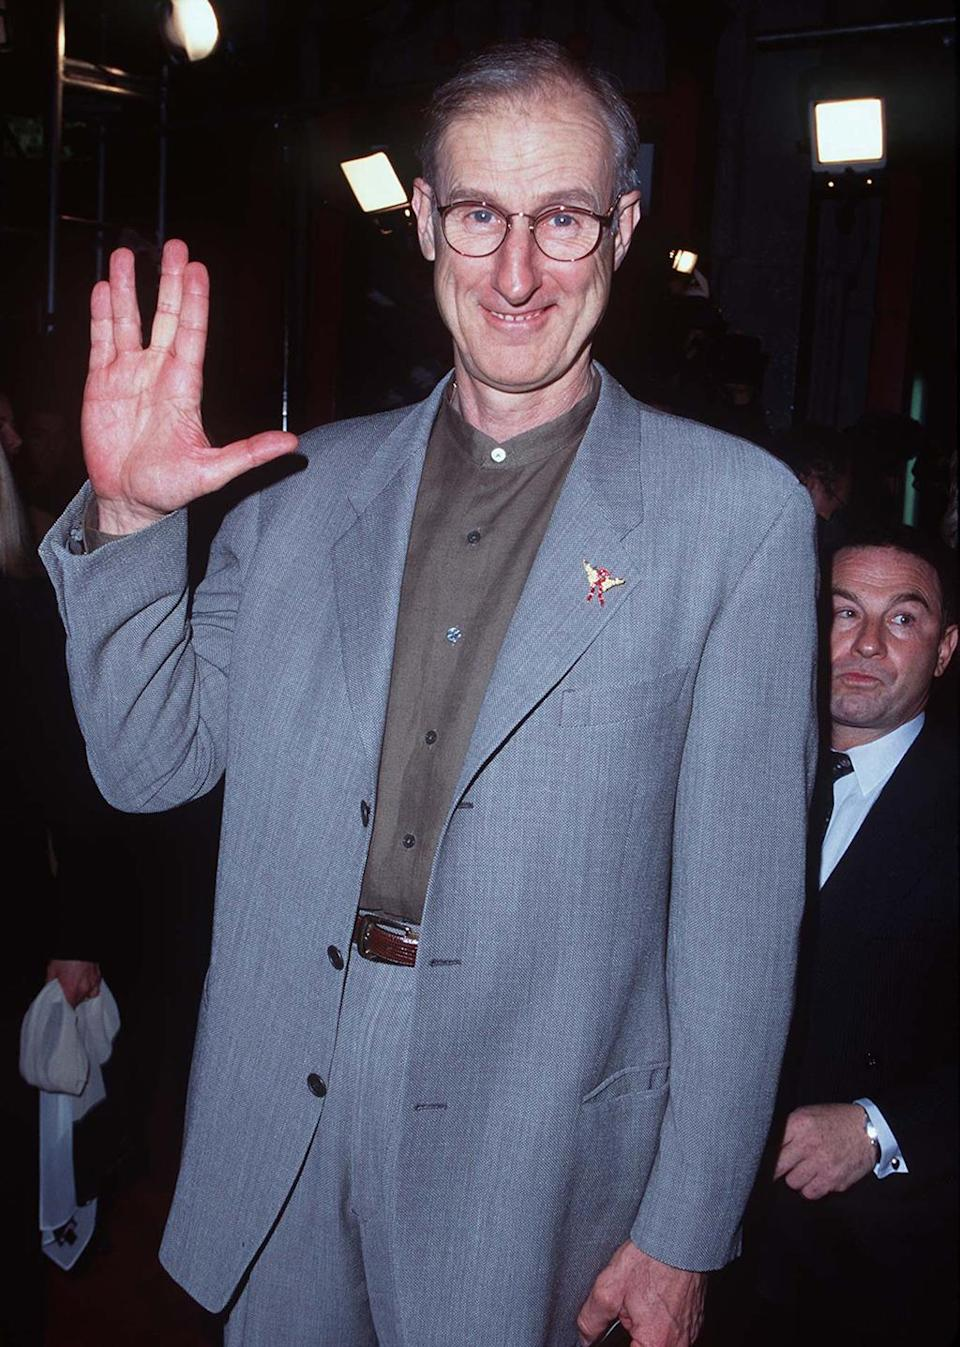 "<p>James Cromwell flashes the ""Live Long and Prosper"" hand sign at the launch for the film, in which he appears as Zefram Cochran, the inventor of the warp core. <i>(Photo: Steve Granitz/WireImage)</i></p>"